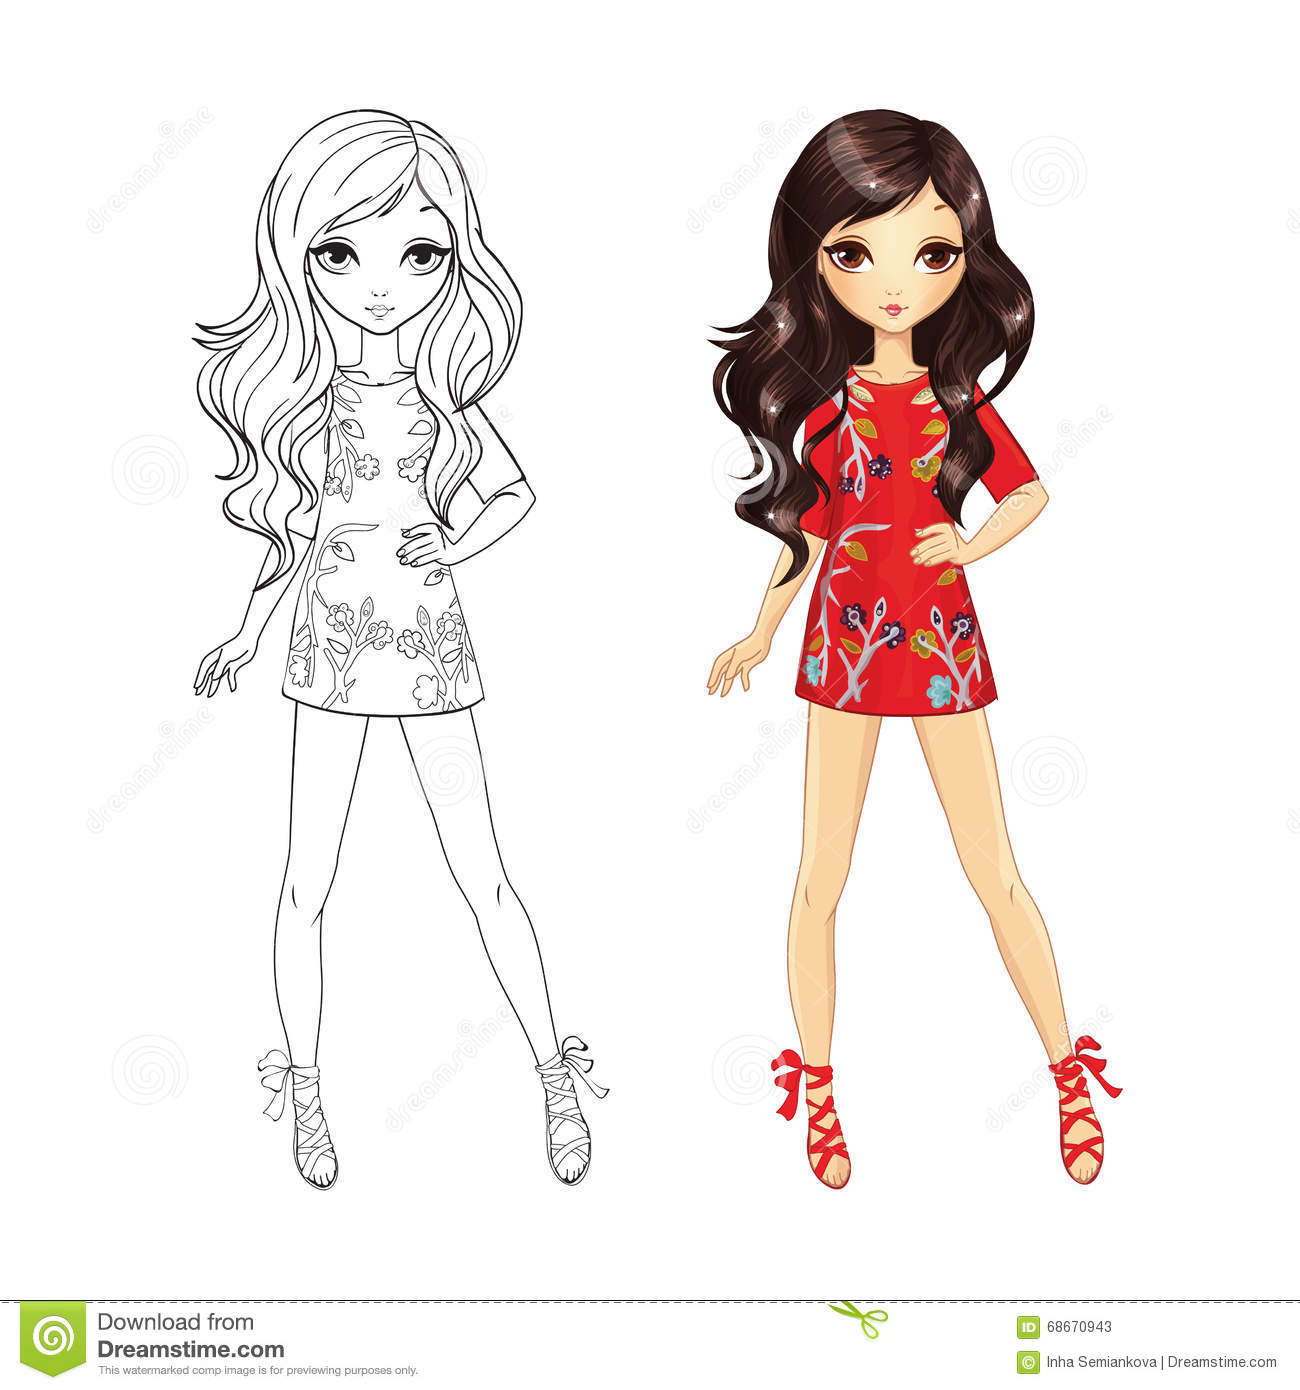 Mode Top Model Coloriage Fille.Best Of Coloriage De Fille A La Mode Elegant Coloriage De